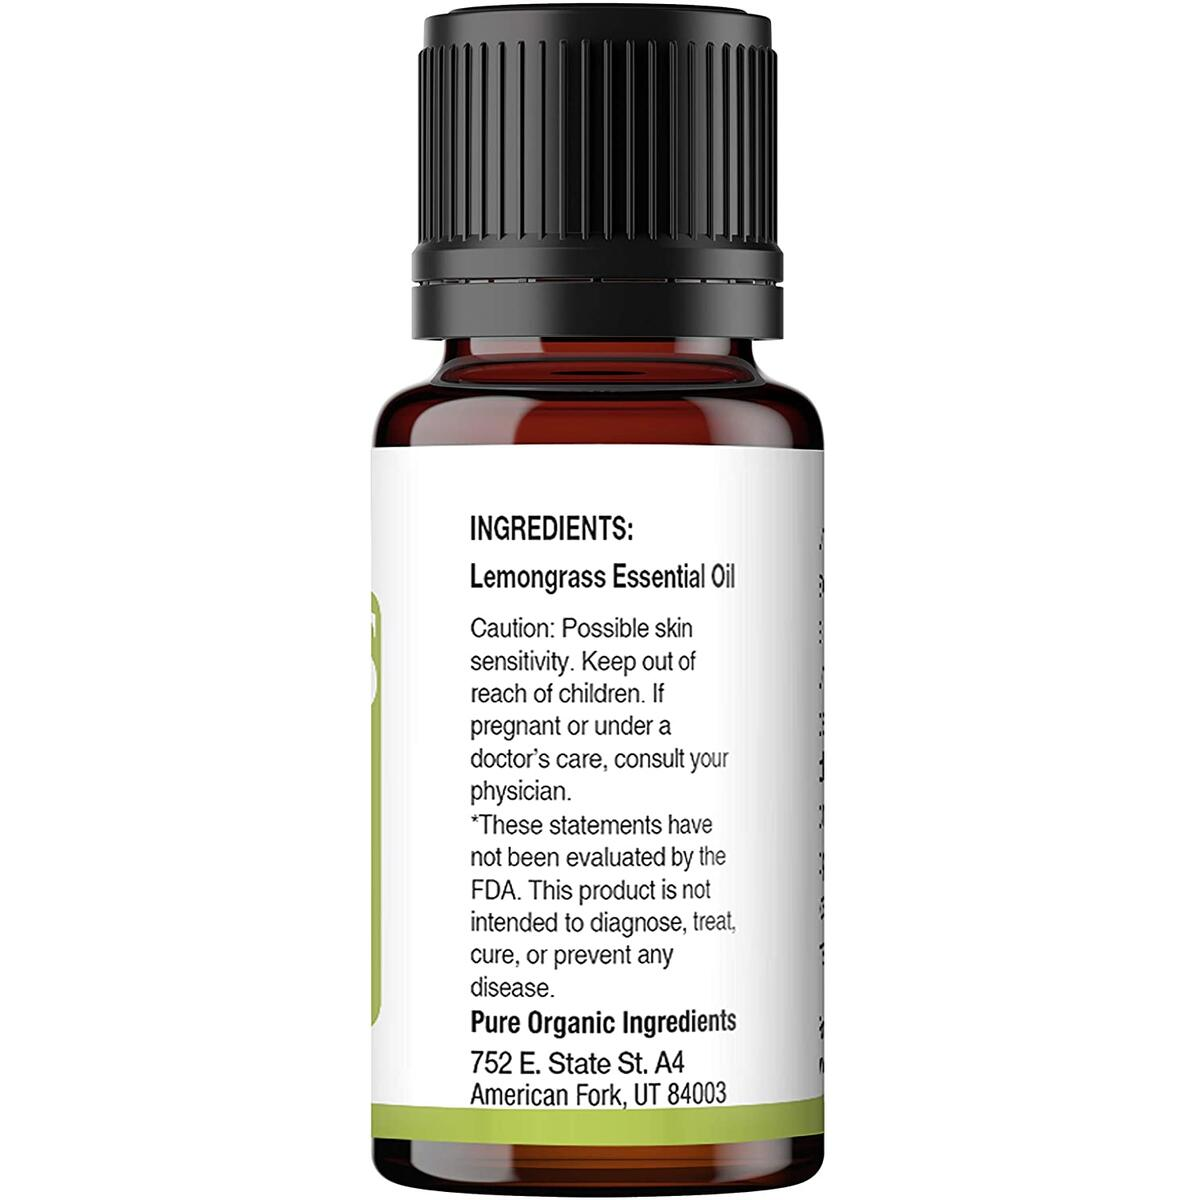 Pure Organic Ingredients Lemongrass Essential Oil (15 ml), Convenient Dropper Cap Bottle, Supports Digestion, Ideal Massage Oil, Natural Cleansing & Detoxifying Agent, Citrus Aroma